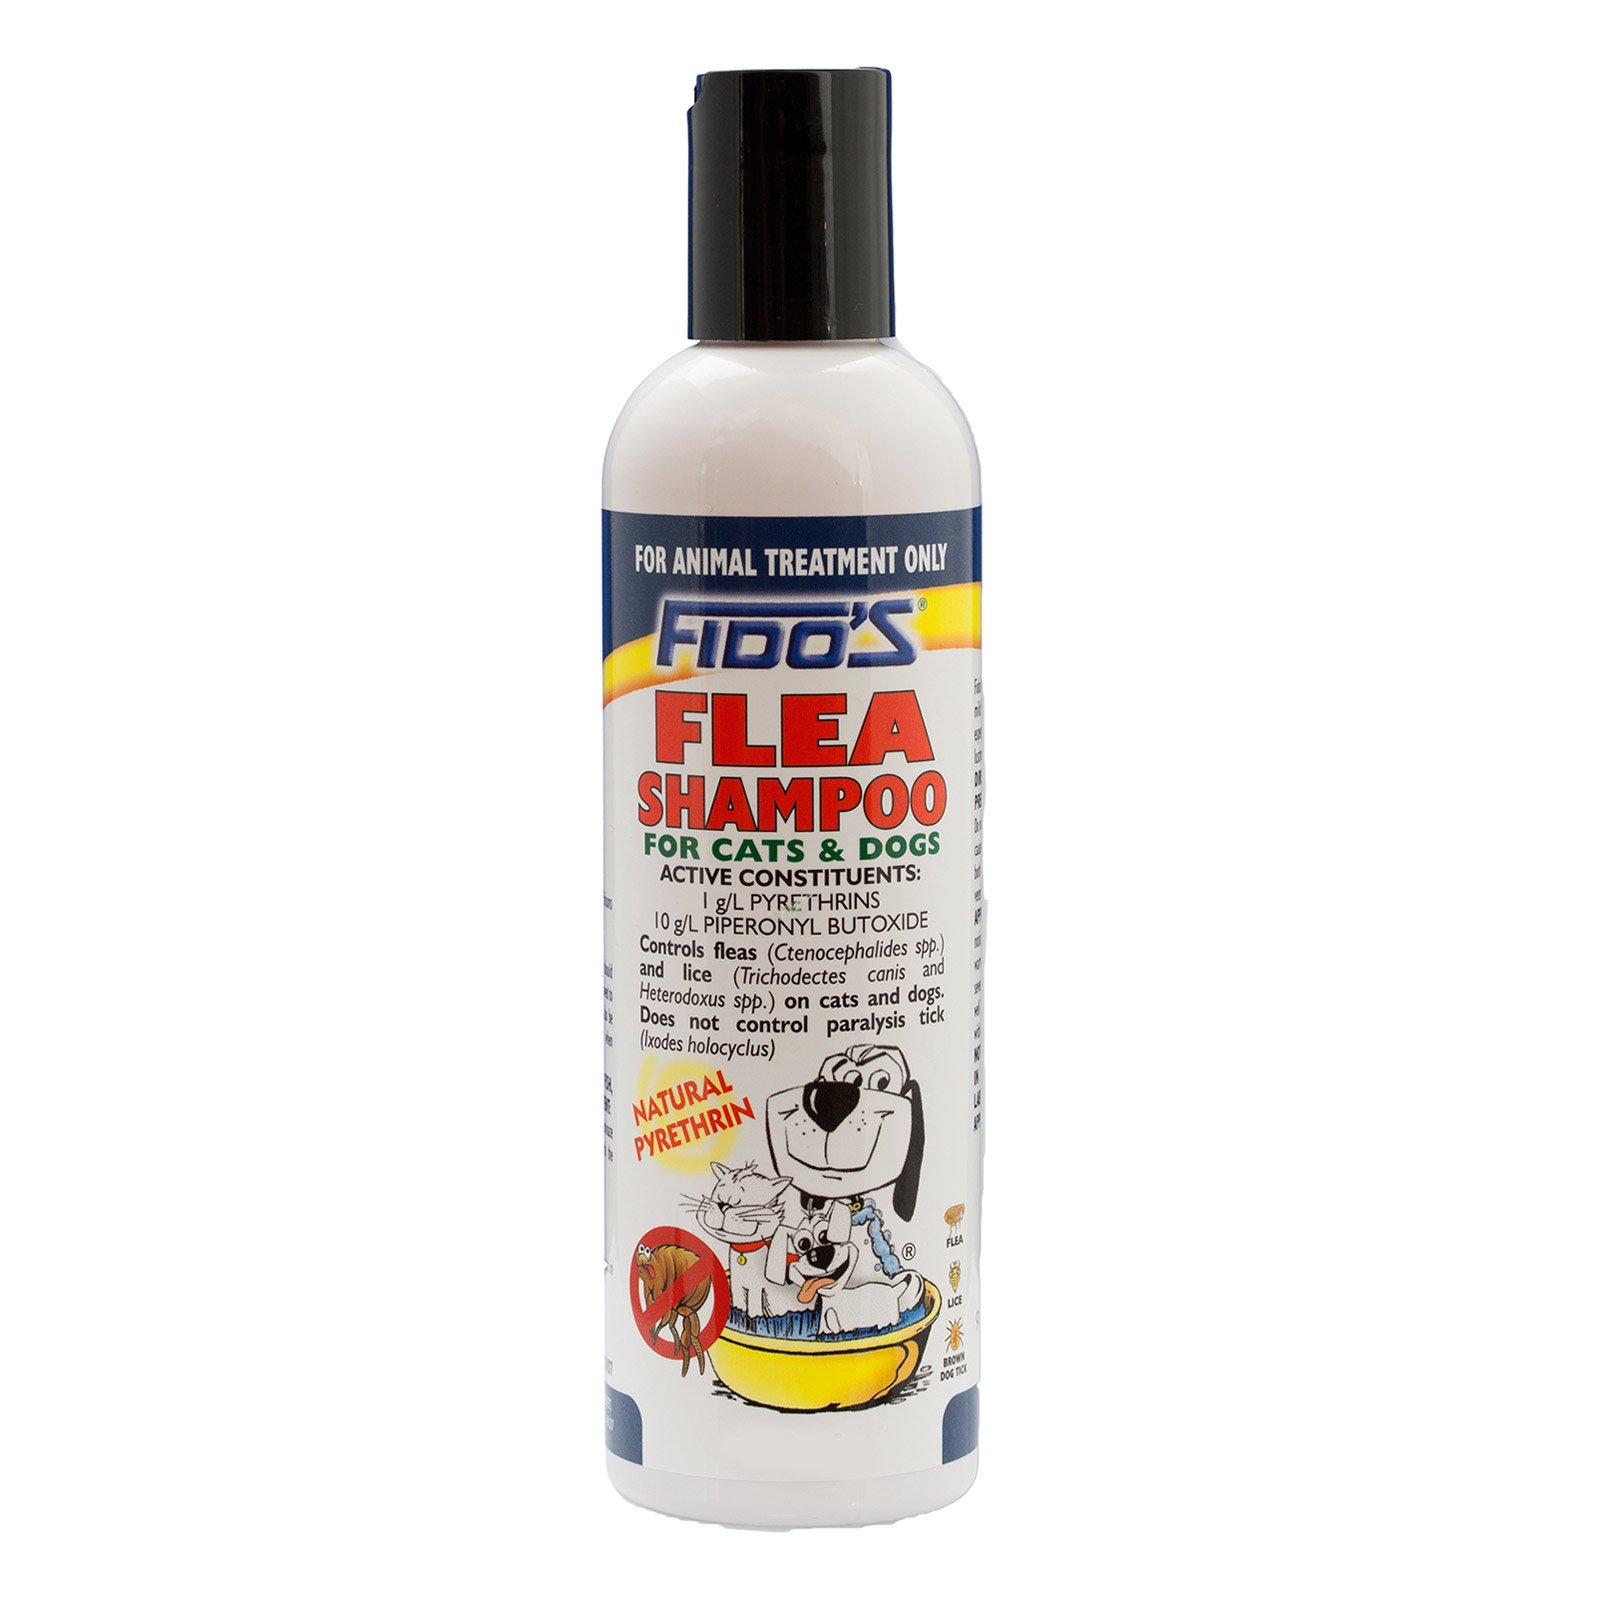 Fidos Flea Shampoo For Dogs